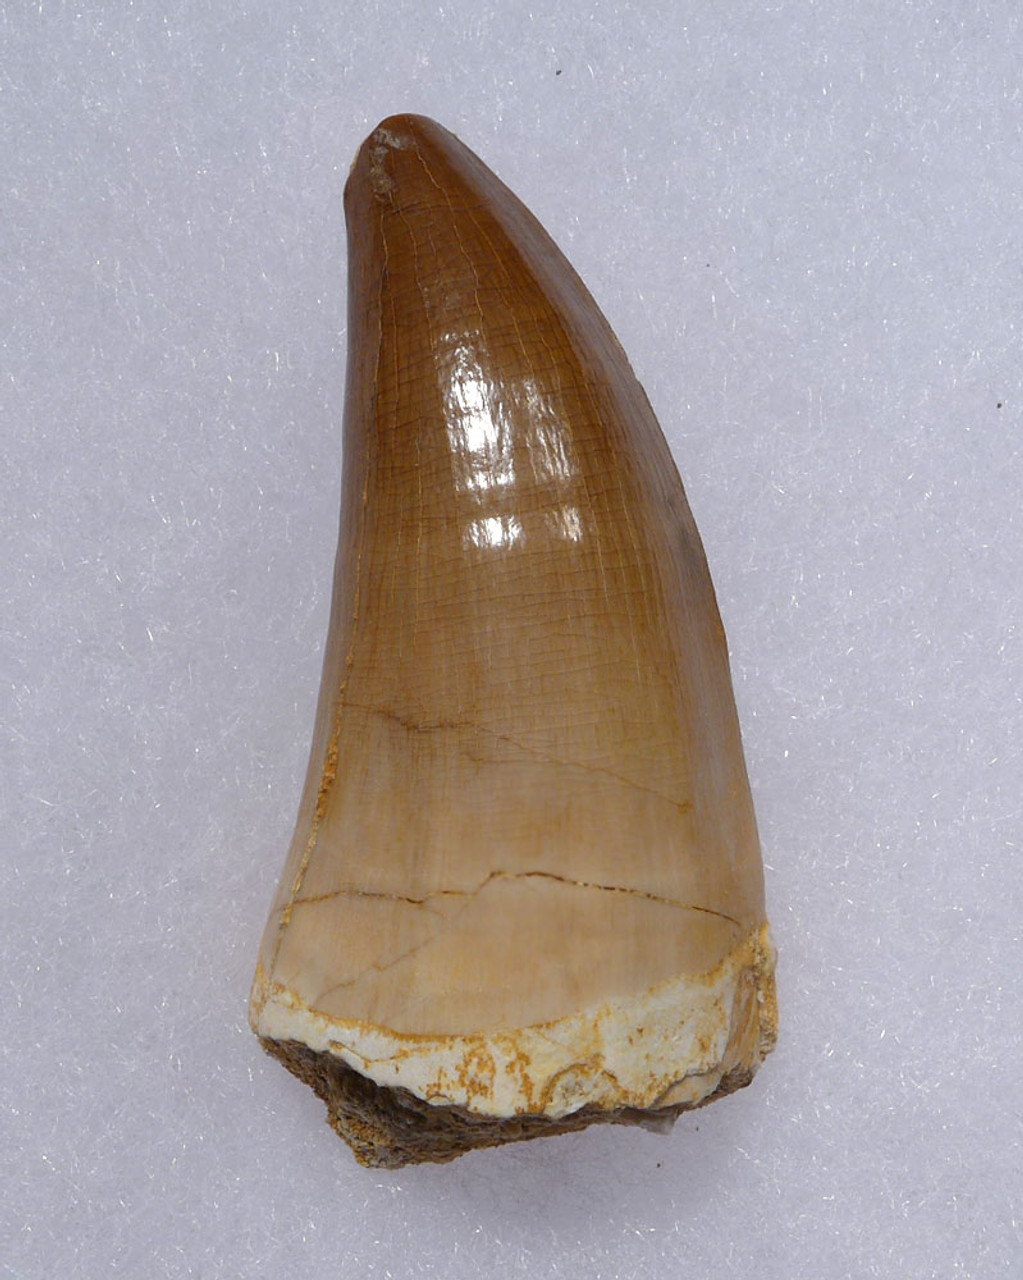 LARGE IMPRESSIVE FOSSIL MOSASAURUS TOOTH FROM A HUGE EXTINCT MOSASAUR  *DT1-900